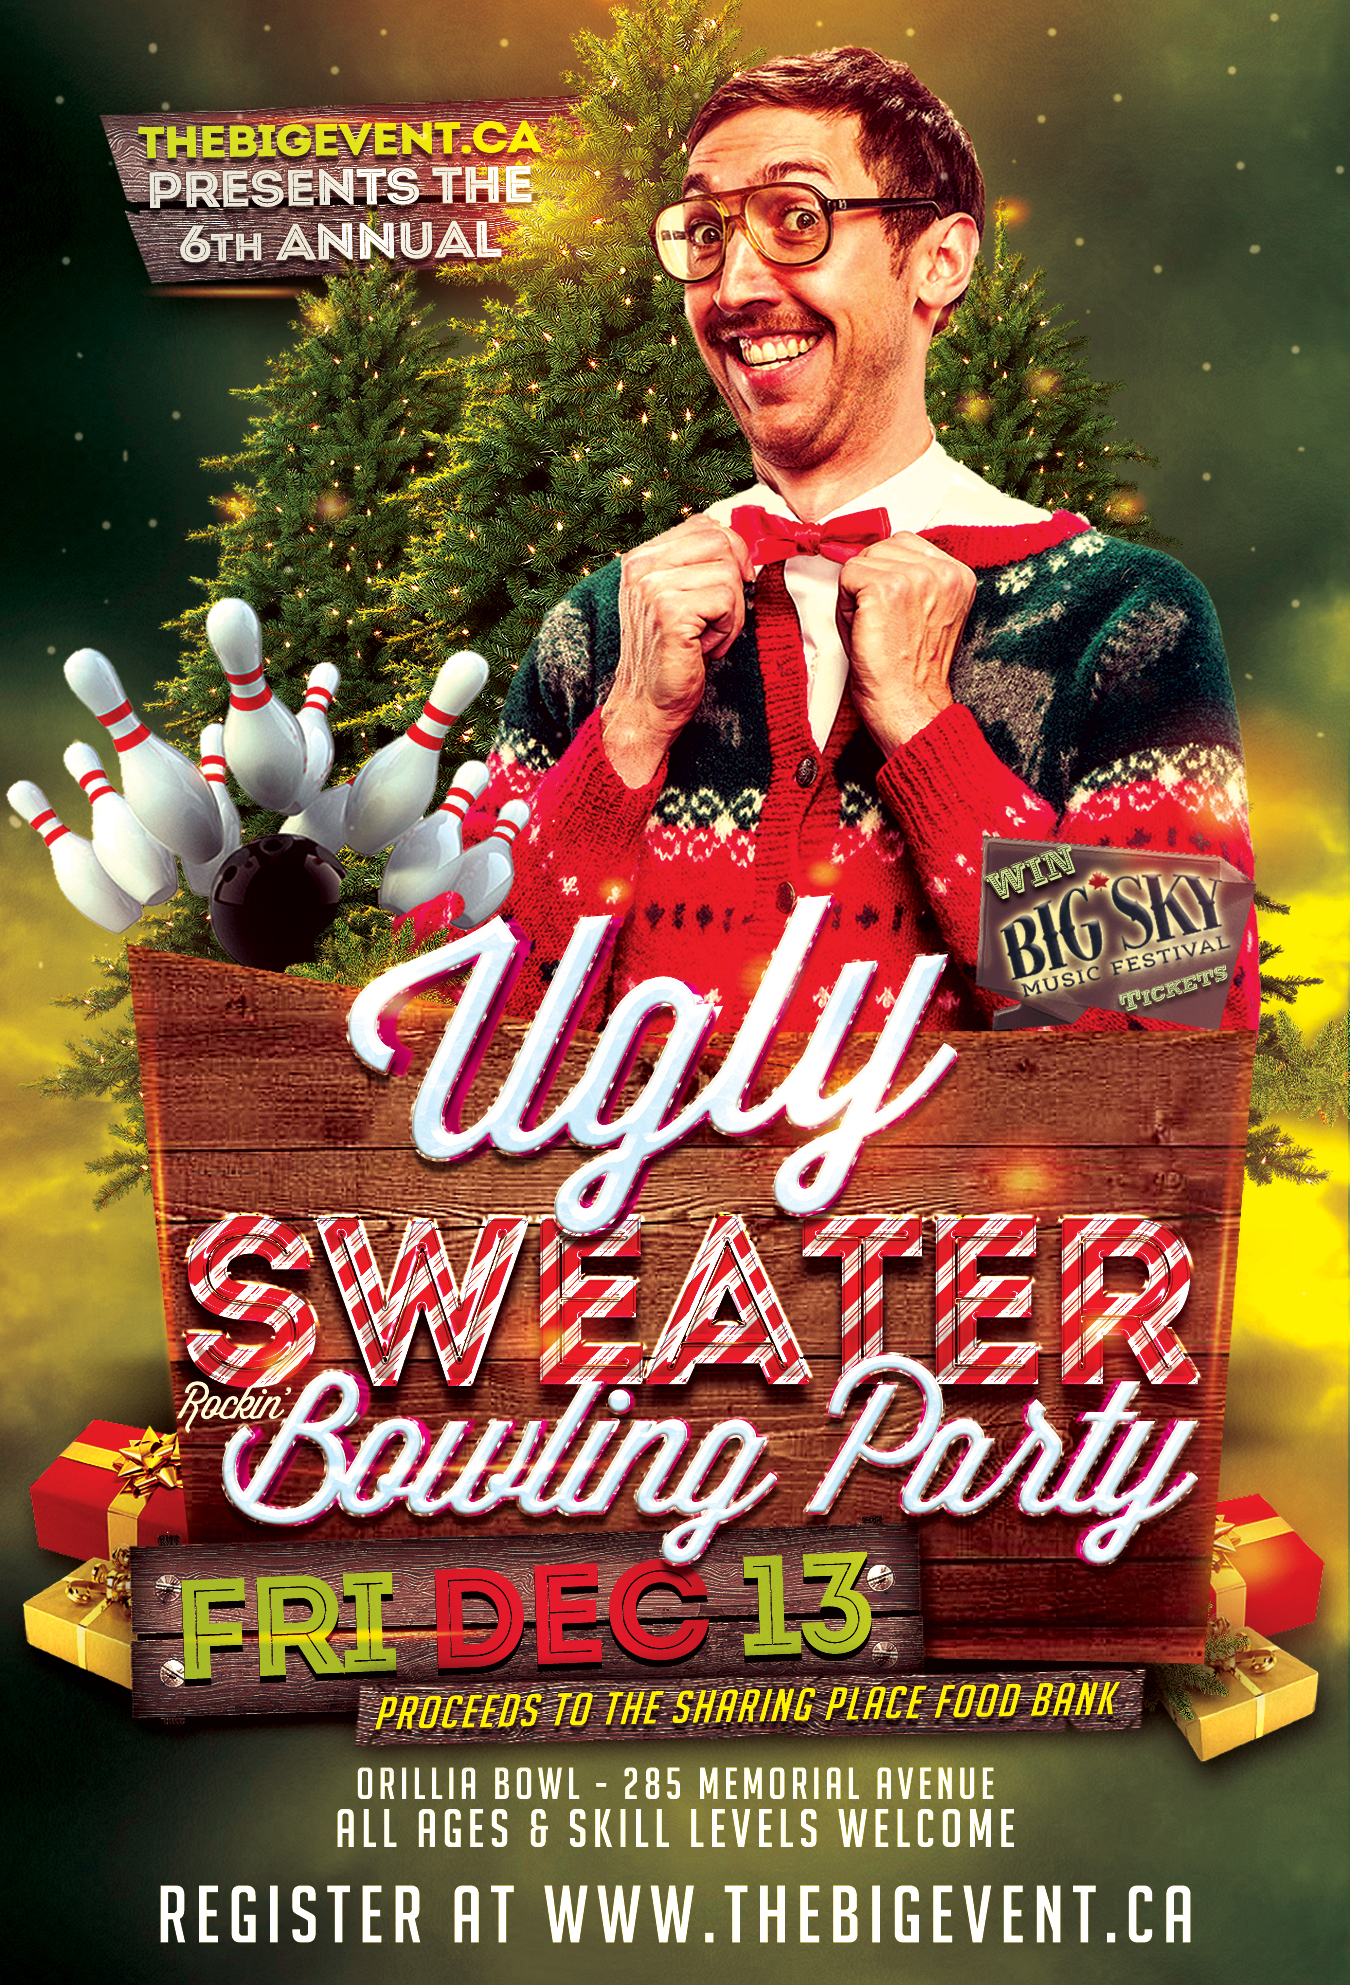 Ugly Sweater Poster 2019 - 6TH ANNUAL UGLY SWEATER BOWLING PARTY